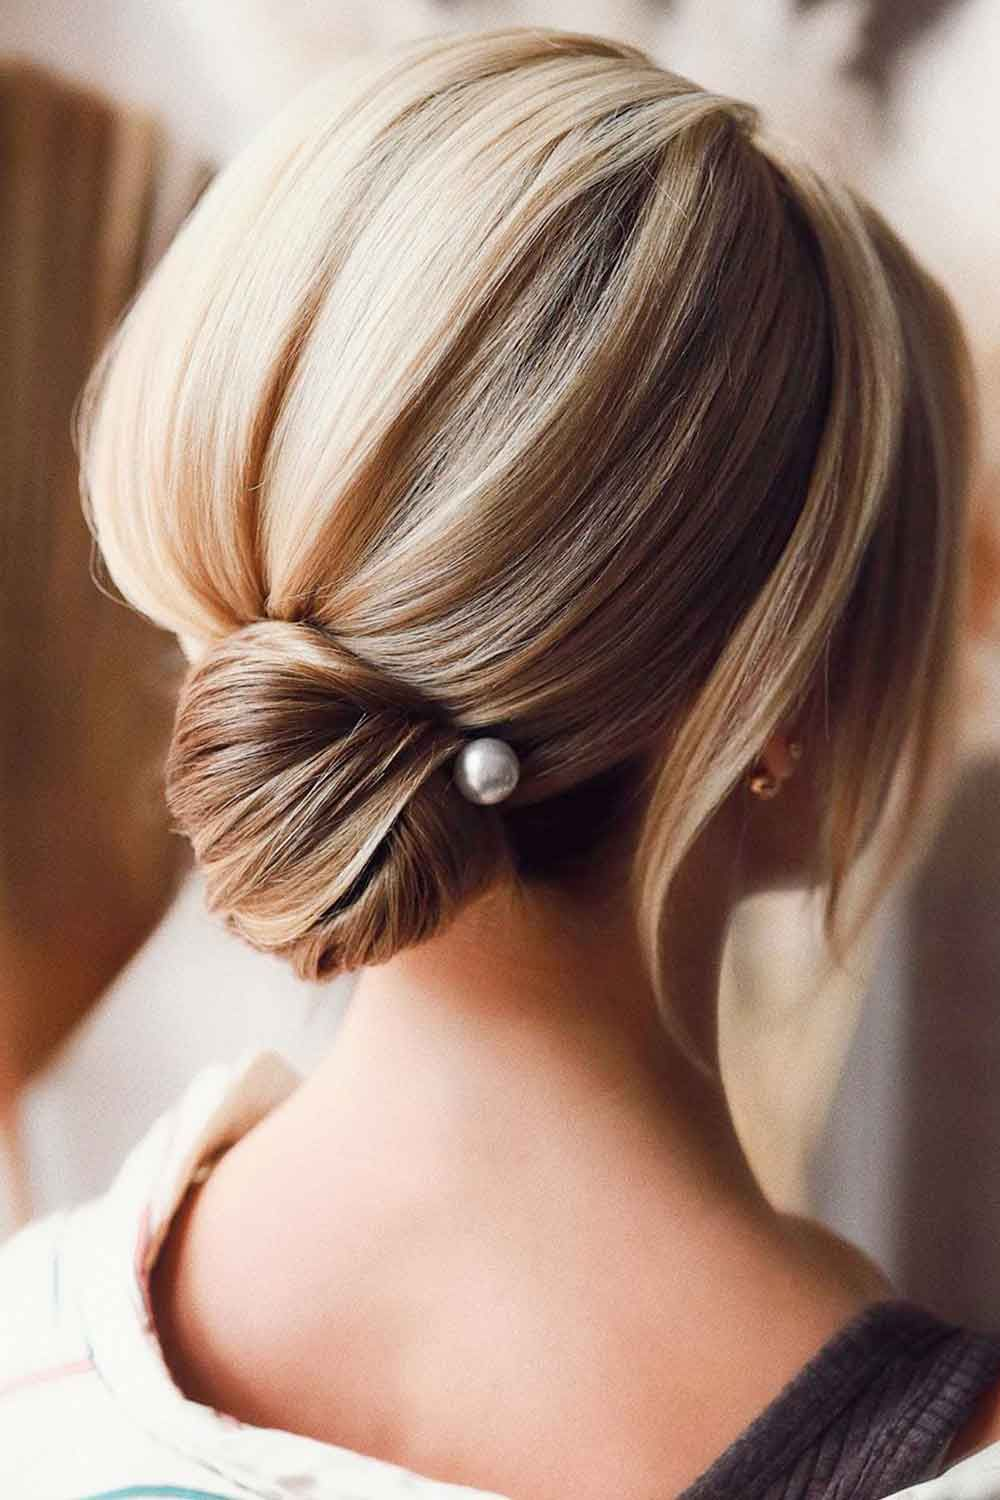 35 Easy And Fancy Ideas Of Wearing Hair Bun For Short Hair In 2020 Short Hair Bun Sleek Short Hair Short Hair Styles